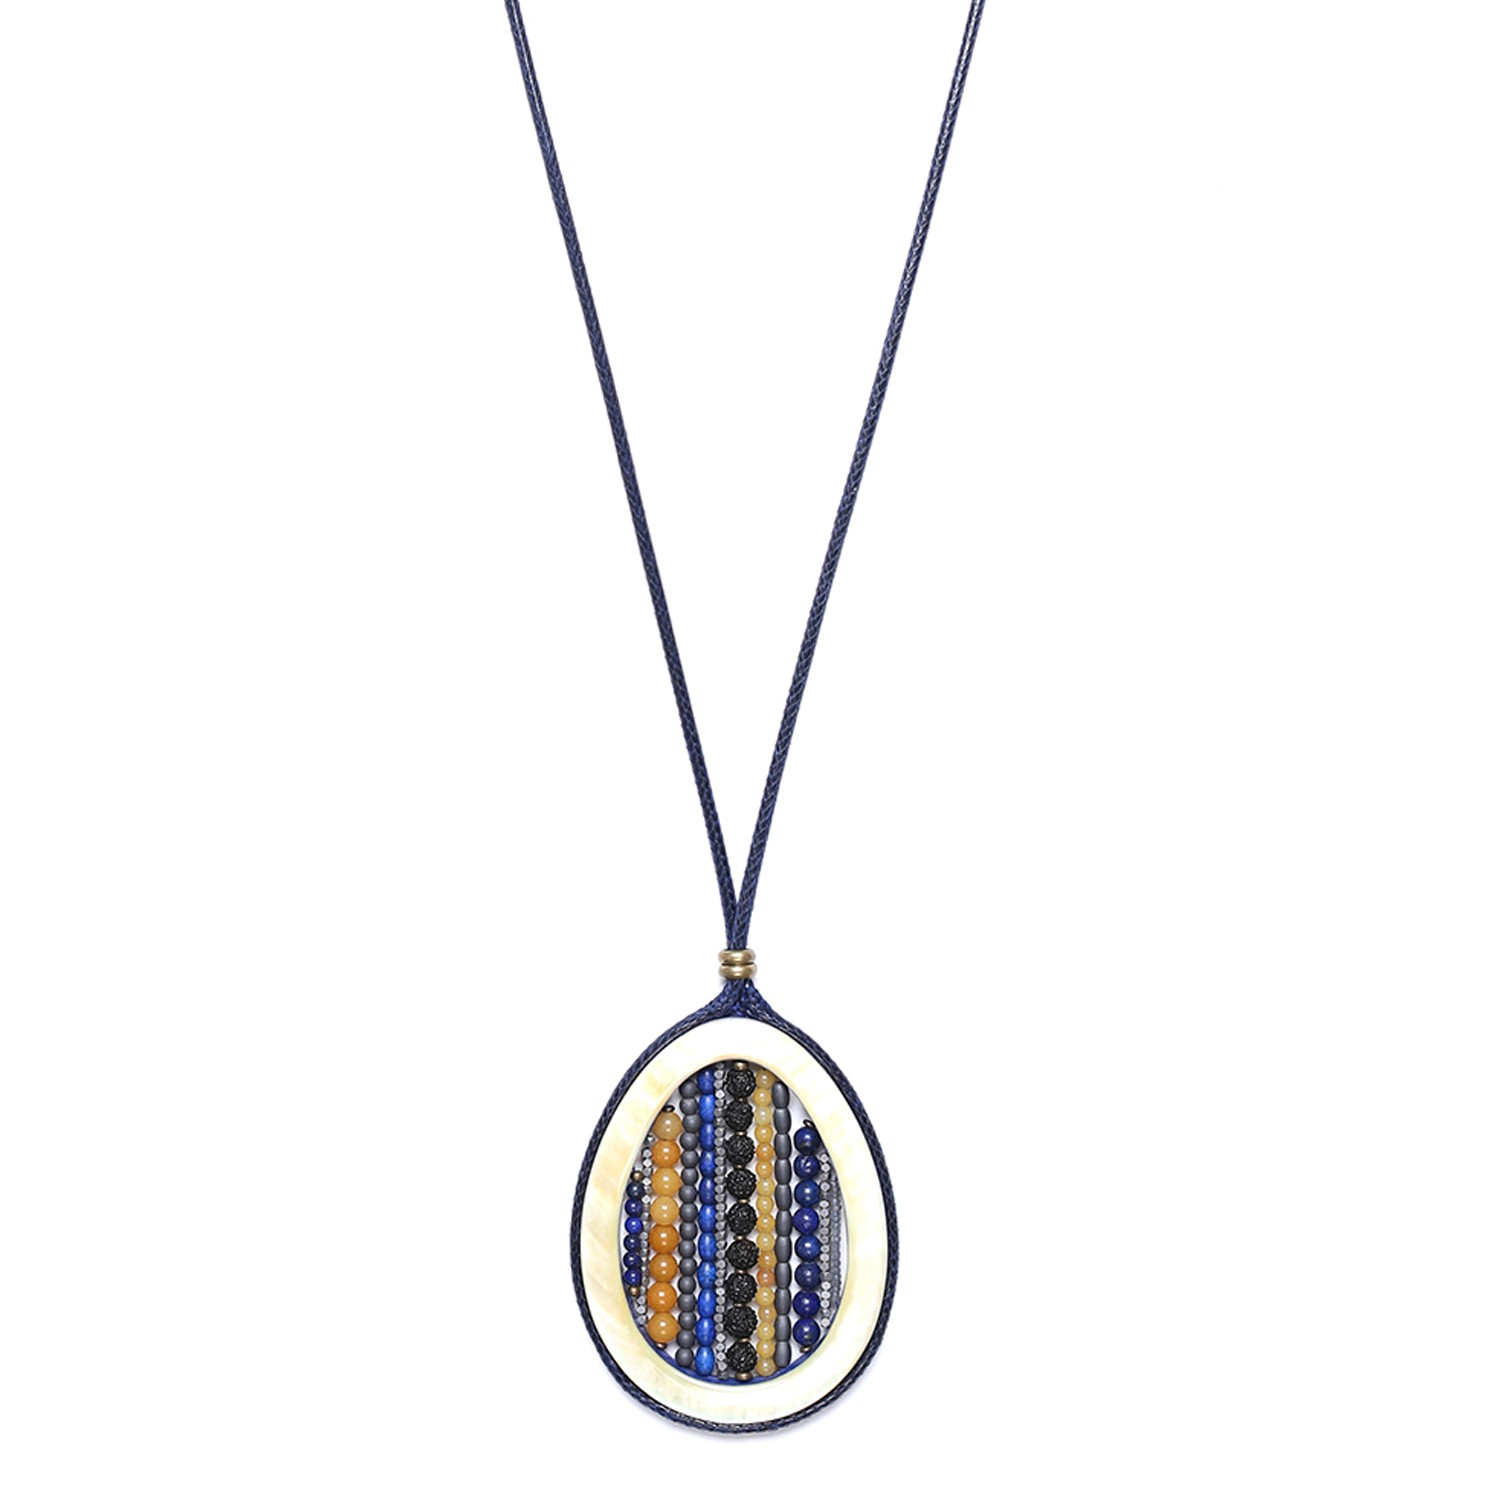 BLUE TRIBE collier long